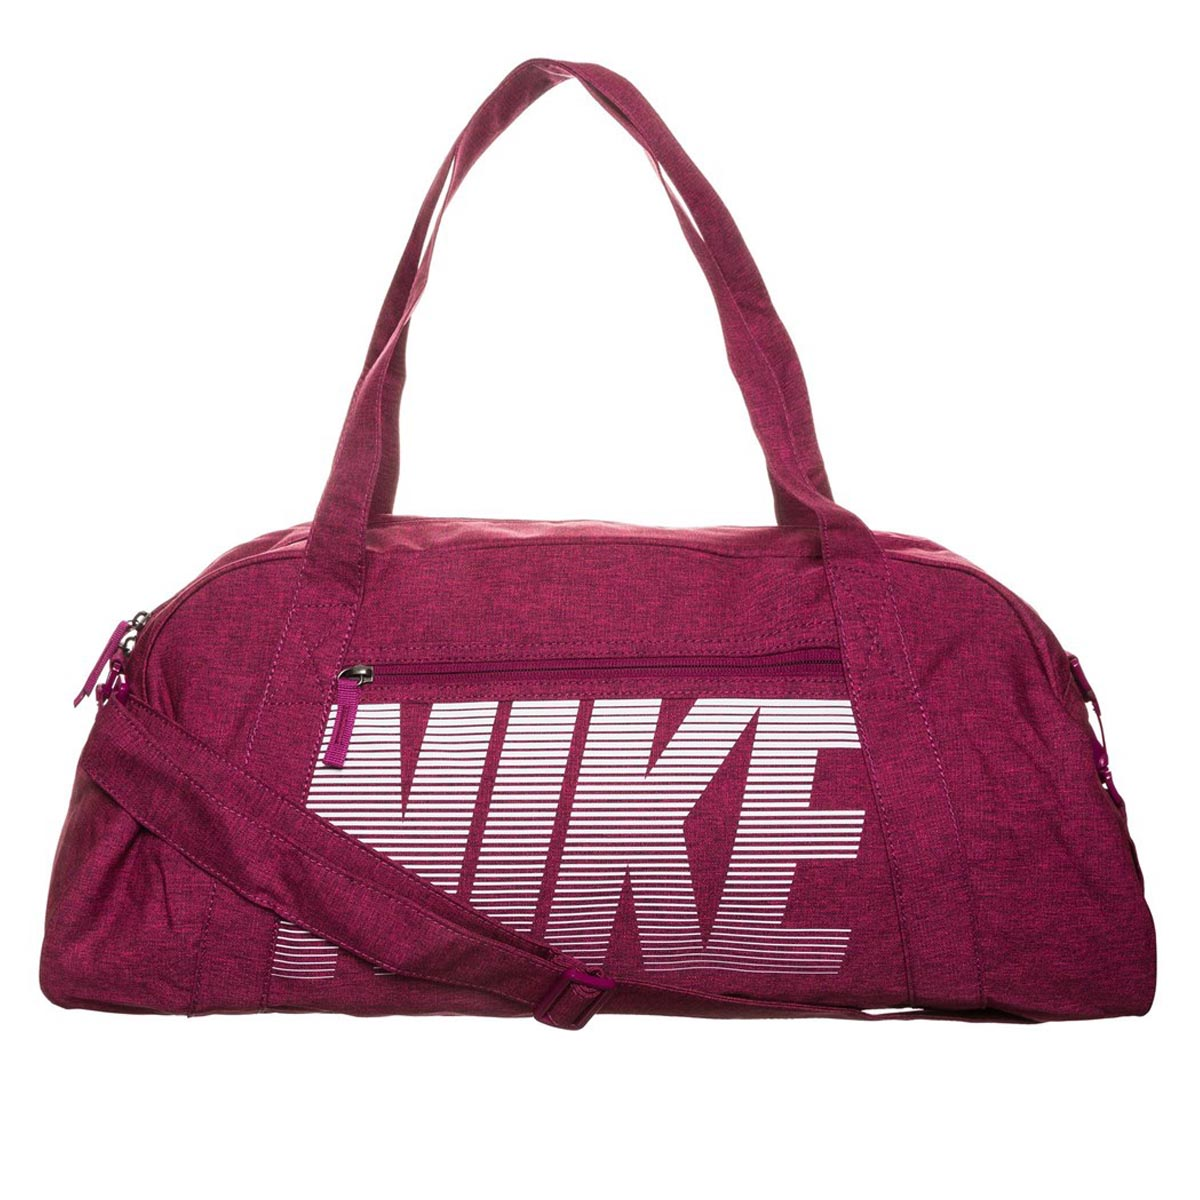 913c02bad16971 Buy Nike Gym Club Duffle Bag (Pink) Online at Lowest Price in India